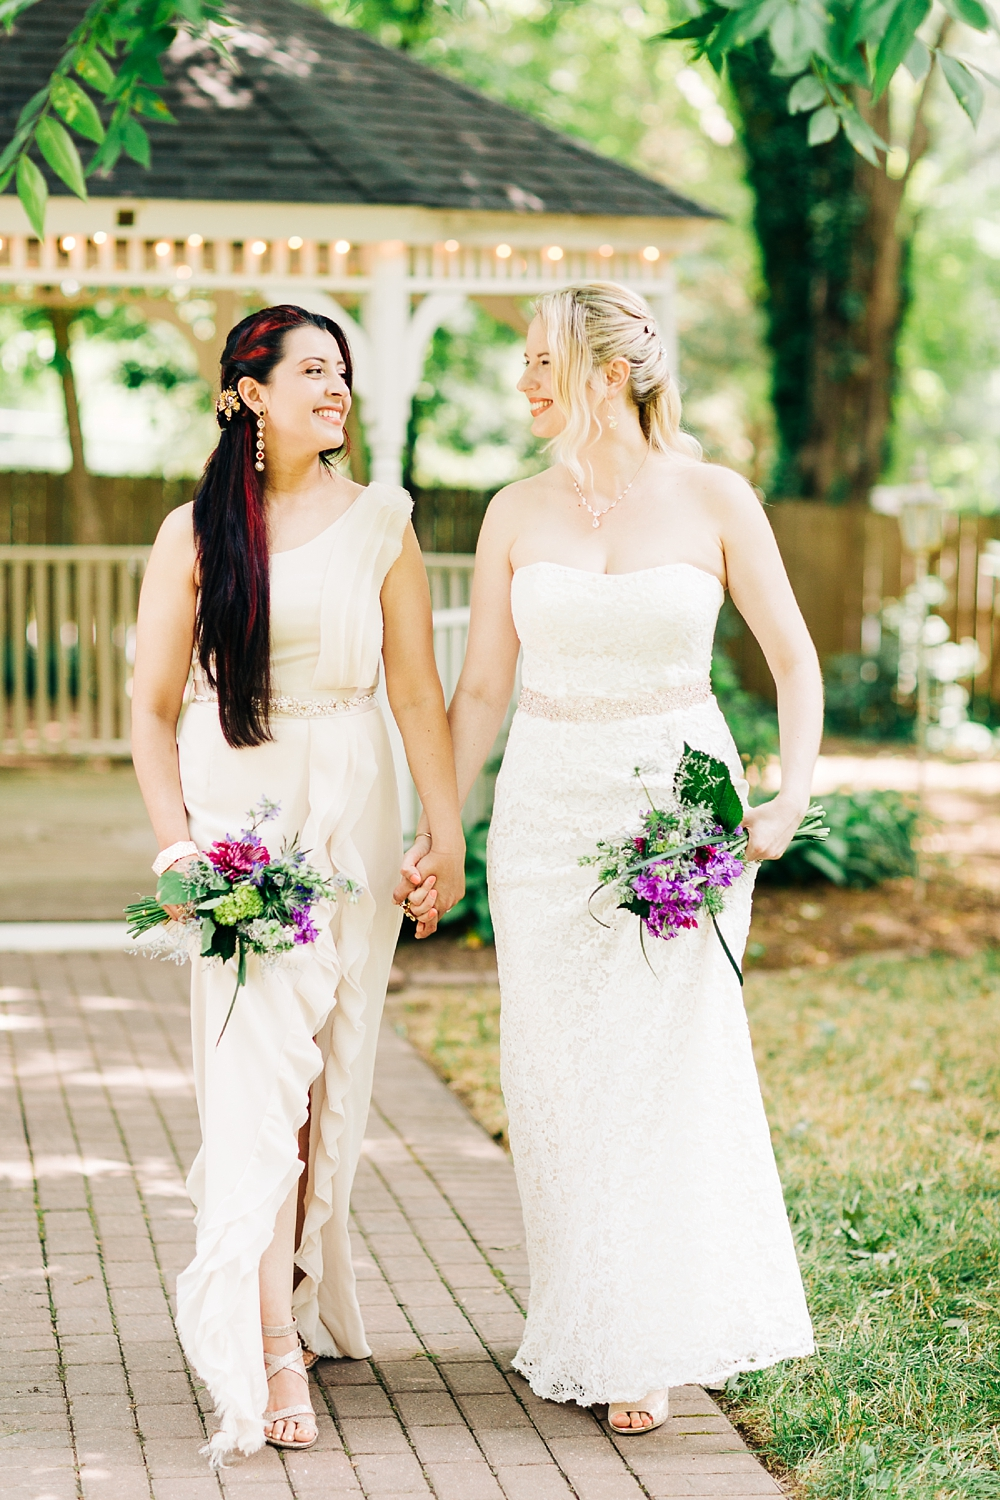 brides walking hand in hand down a brick path